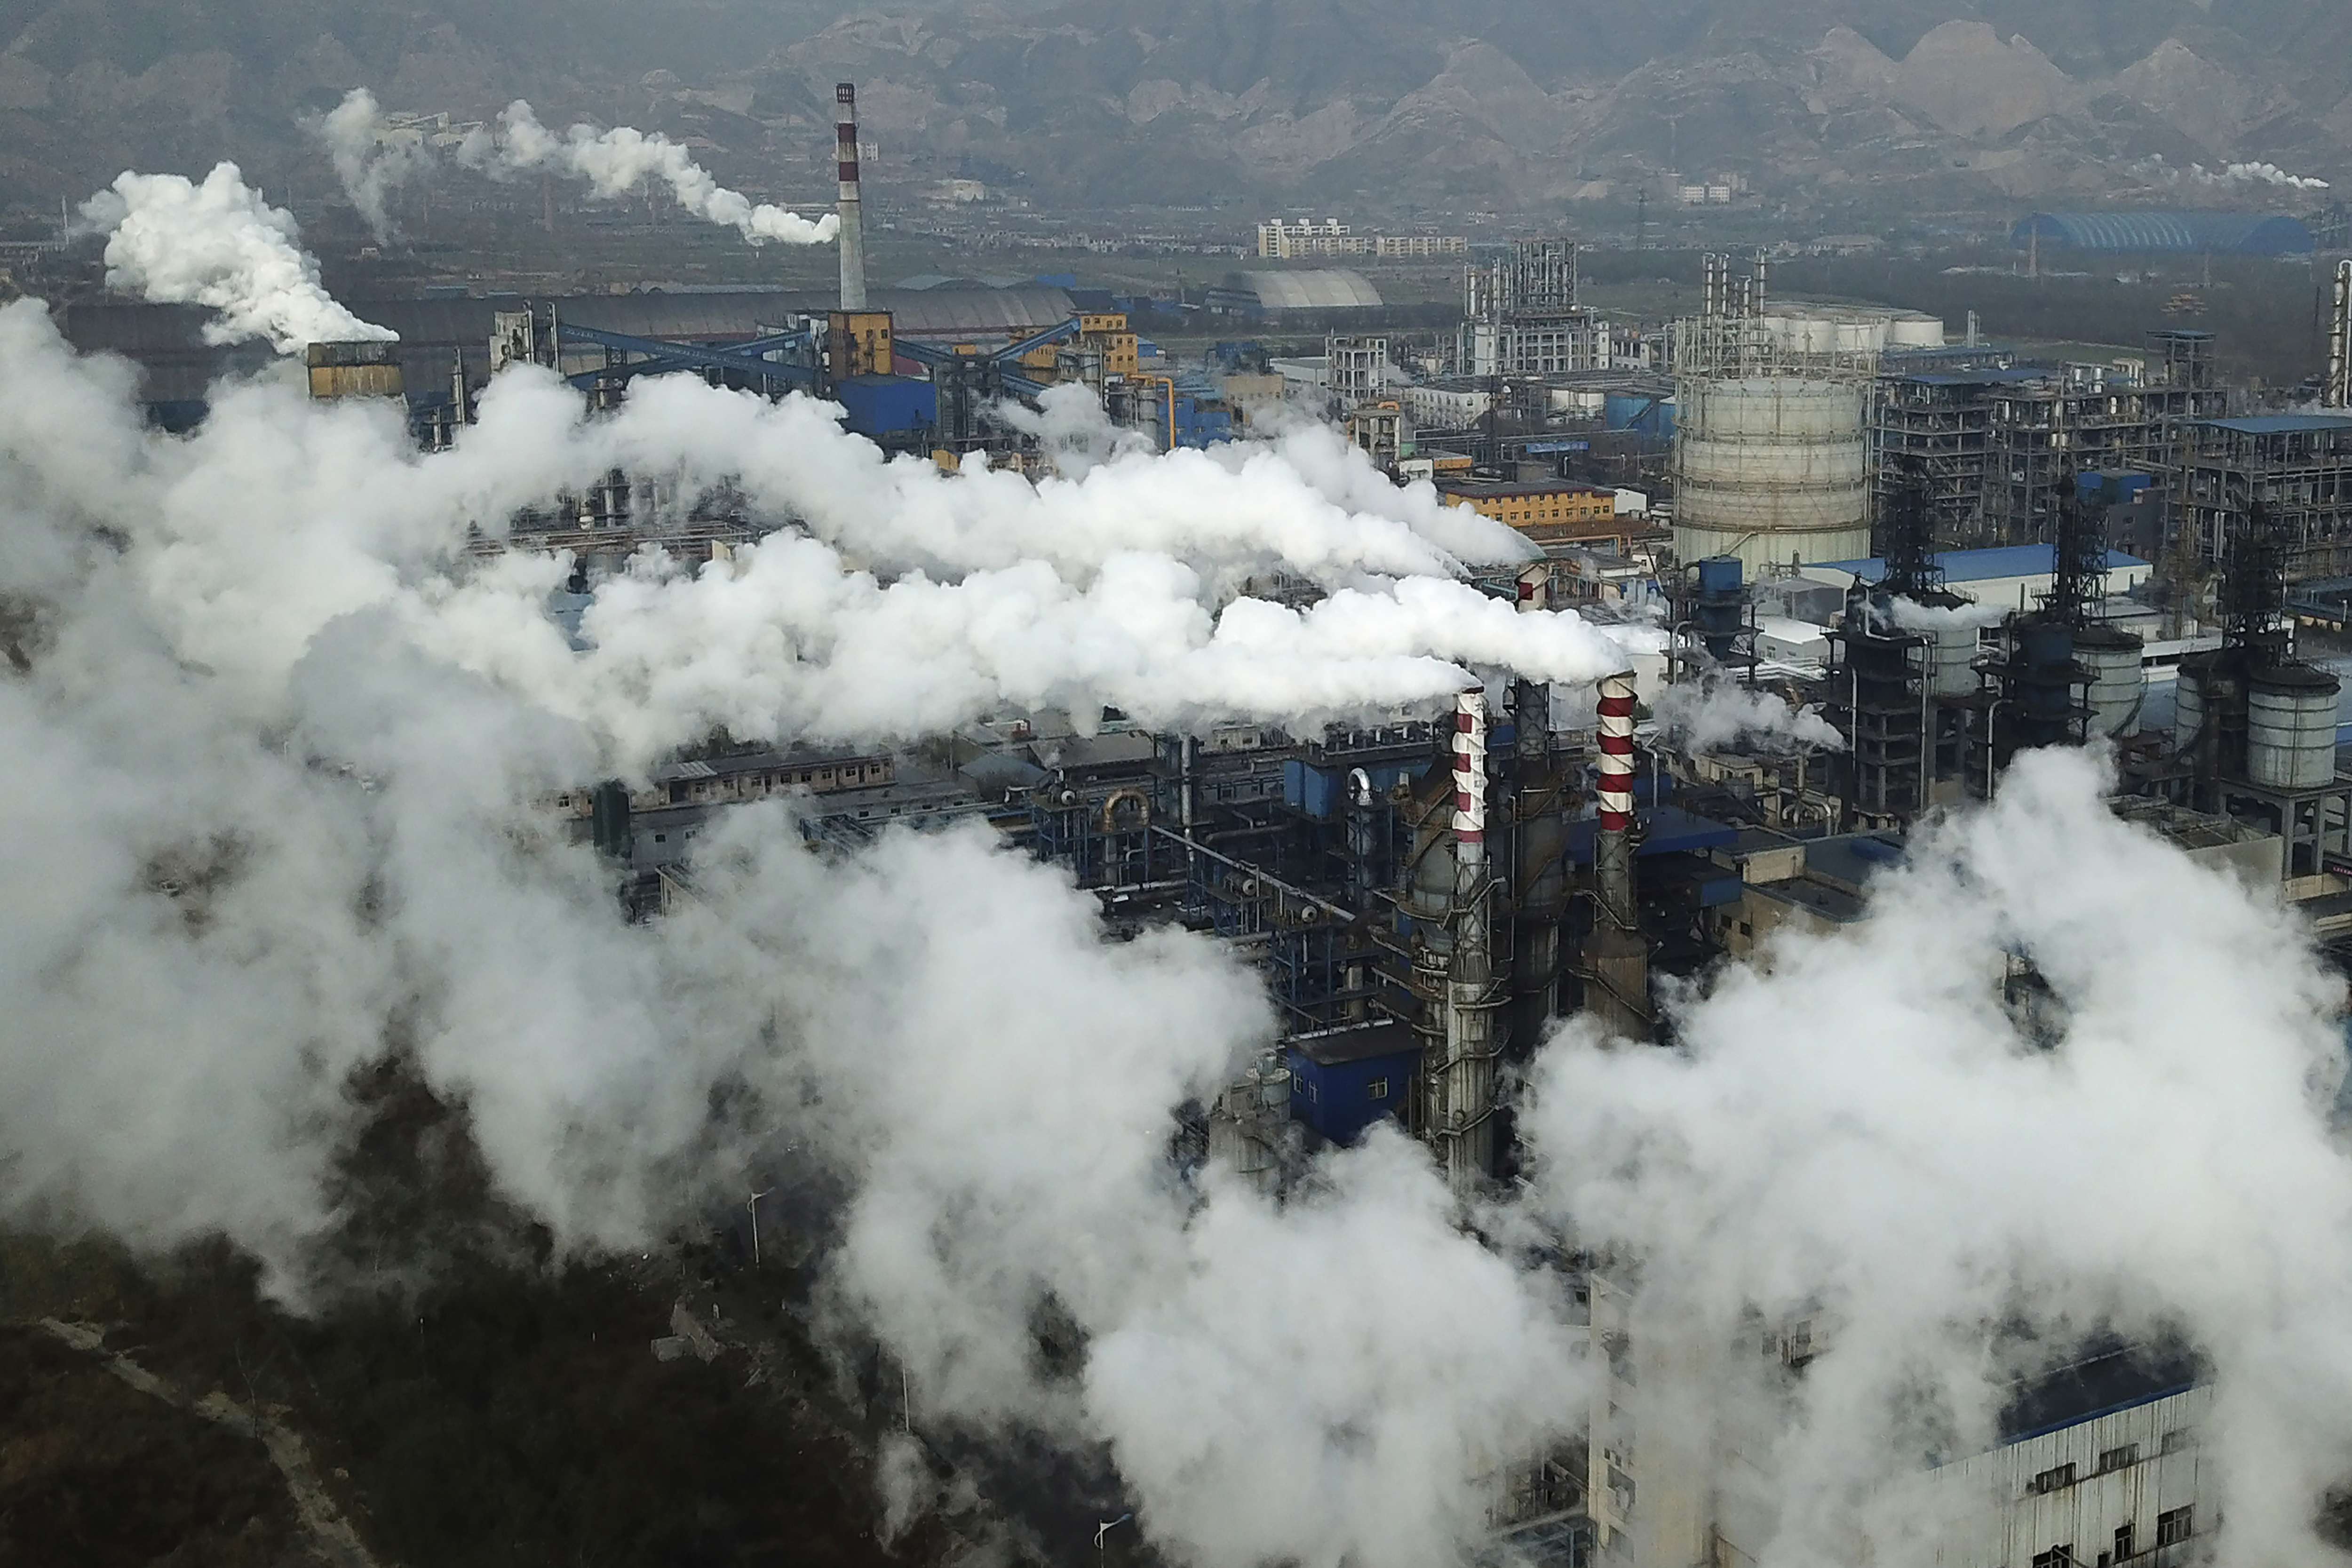 Smoke and steam rise from a coal processing plant in China.